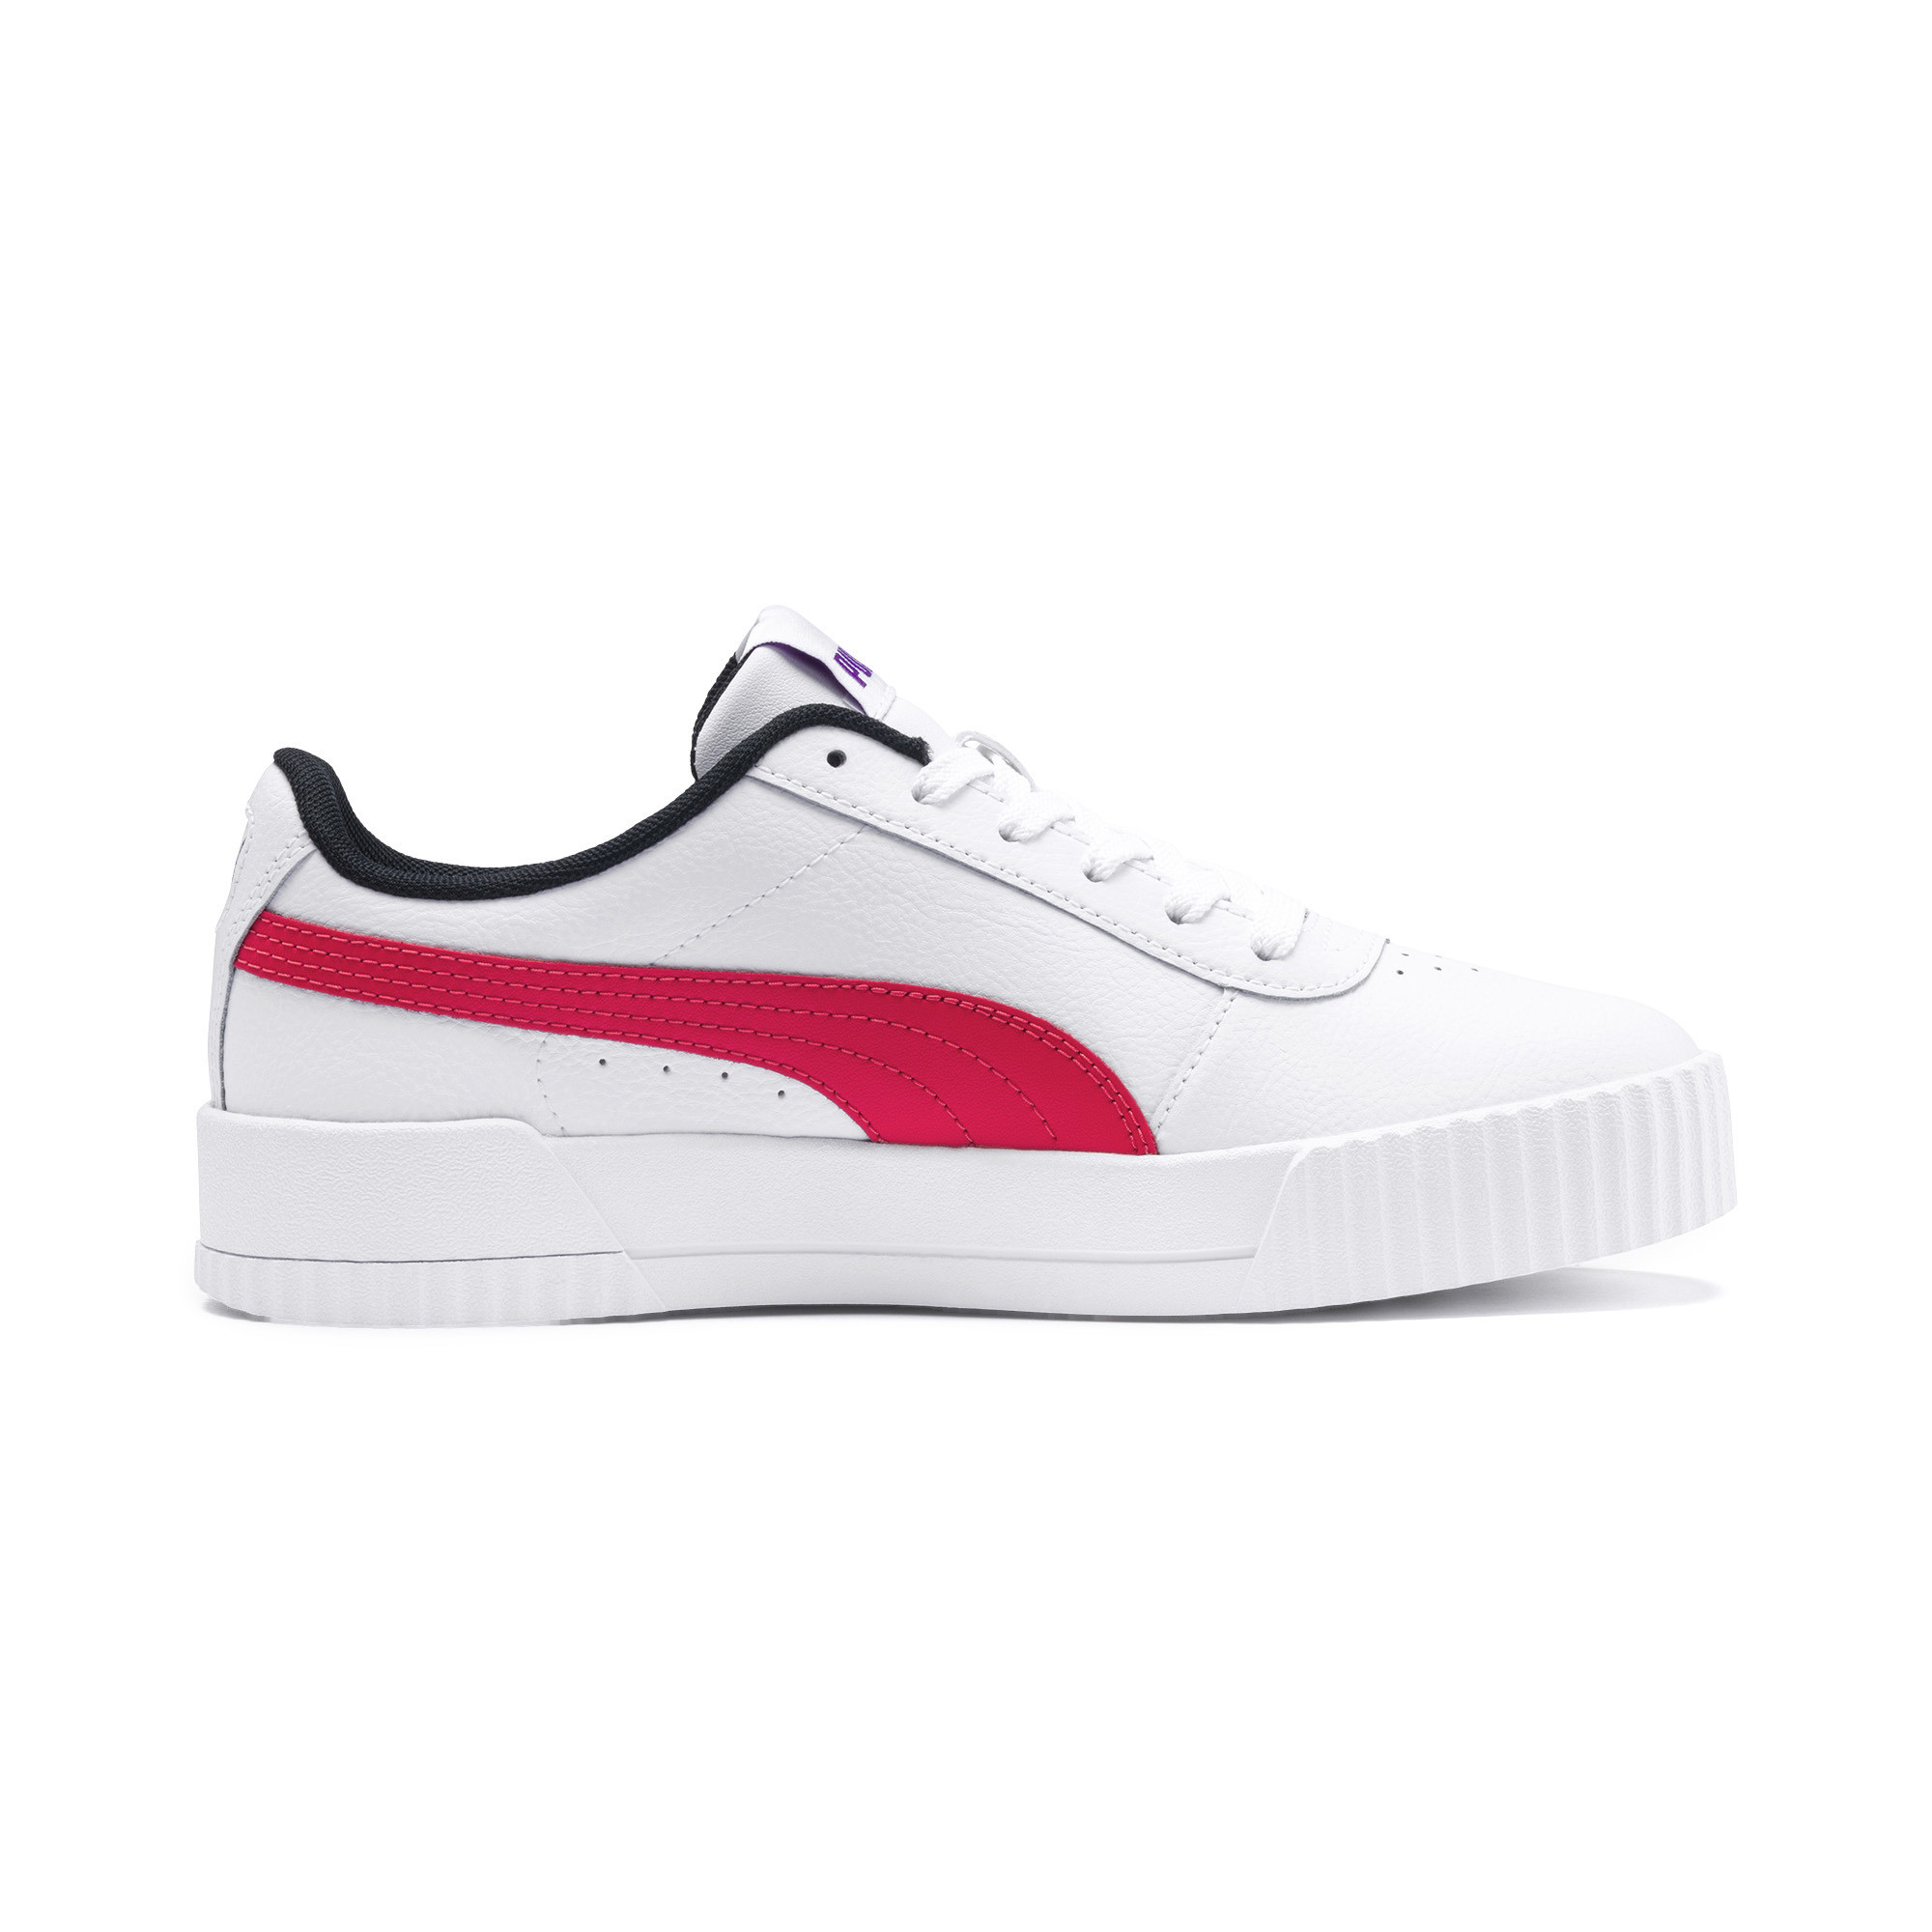 PUMA-Carina-Leather-Women-s-Sneakers-Women-Shoe-Basics thumbnail 19